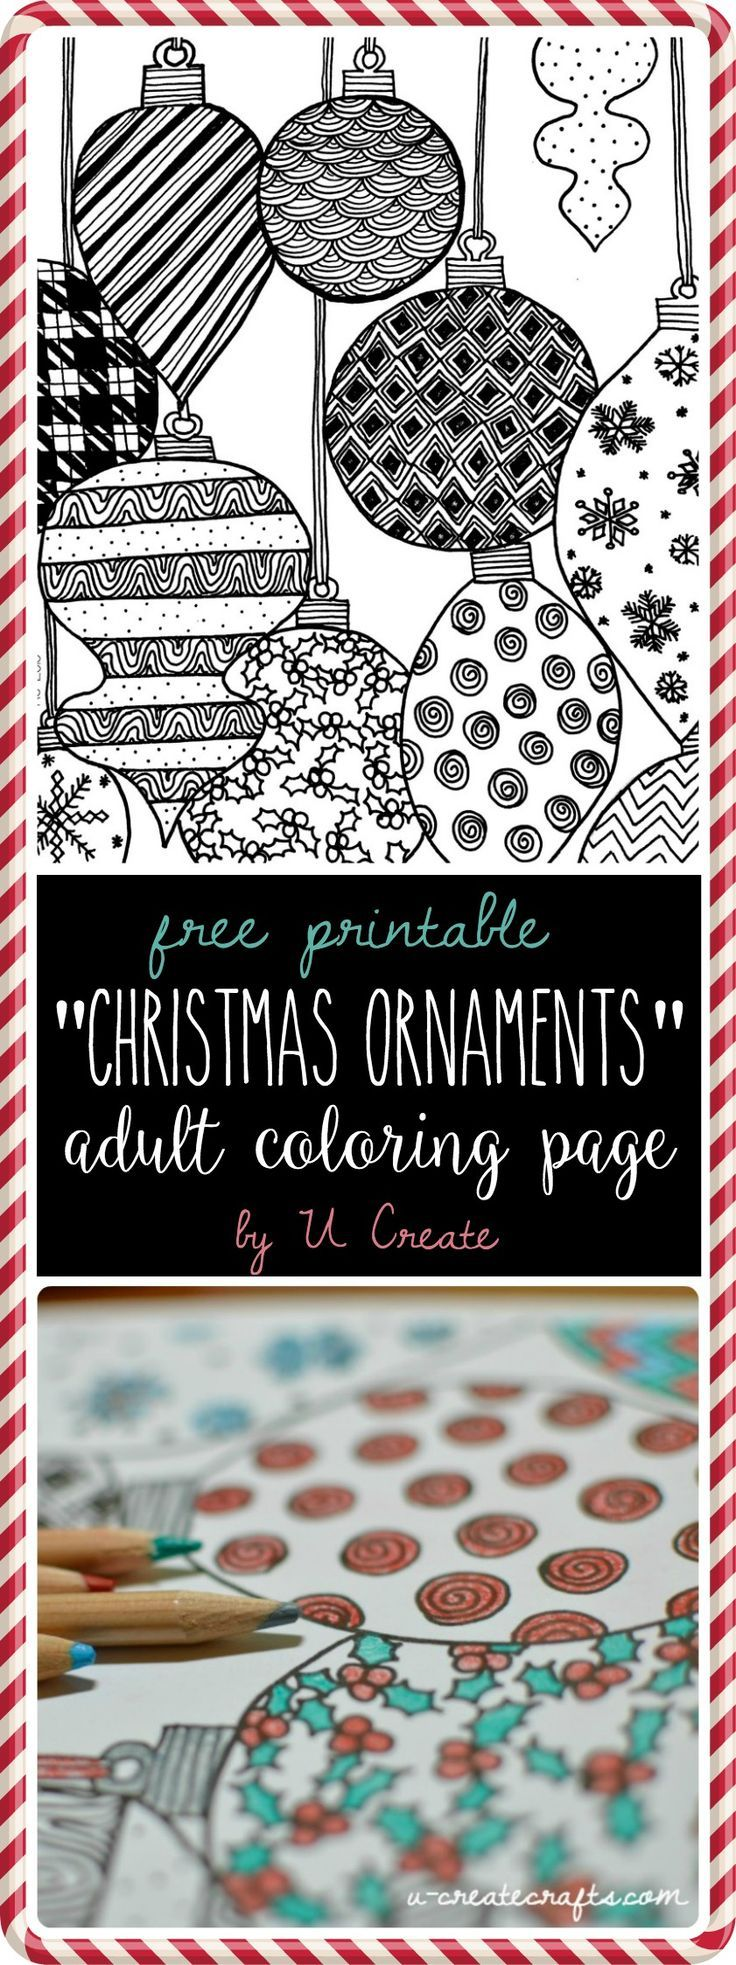 Christmas Ornaments free coloring page by U Create!